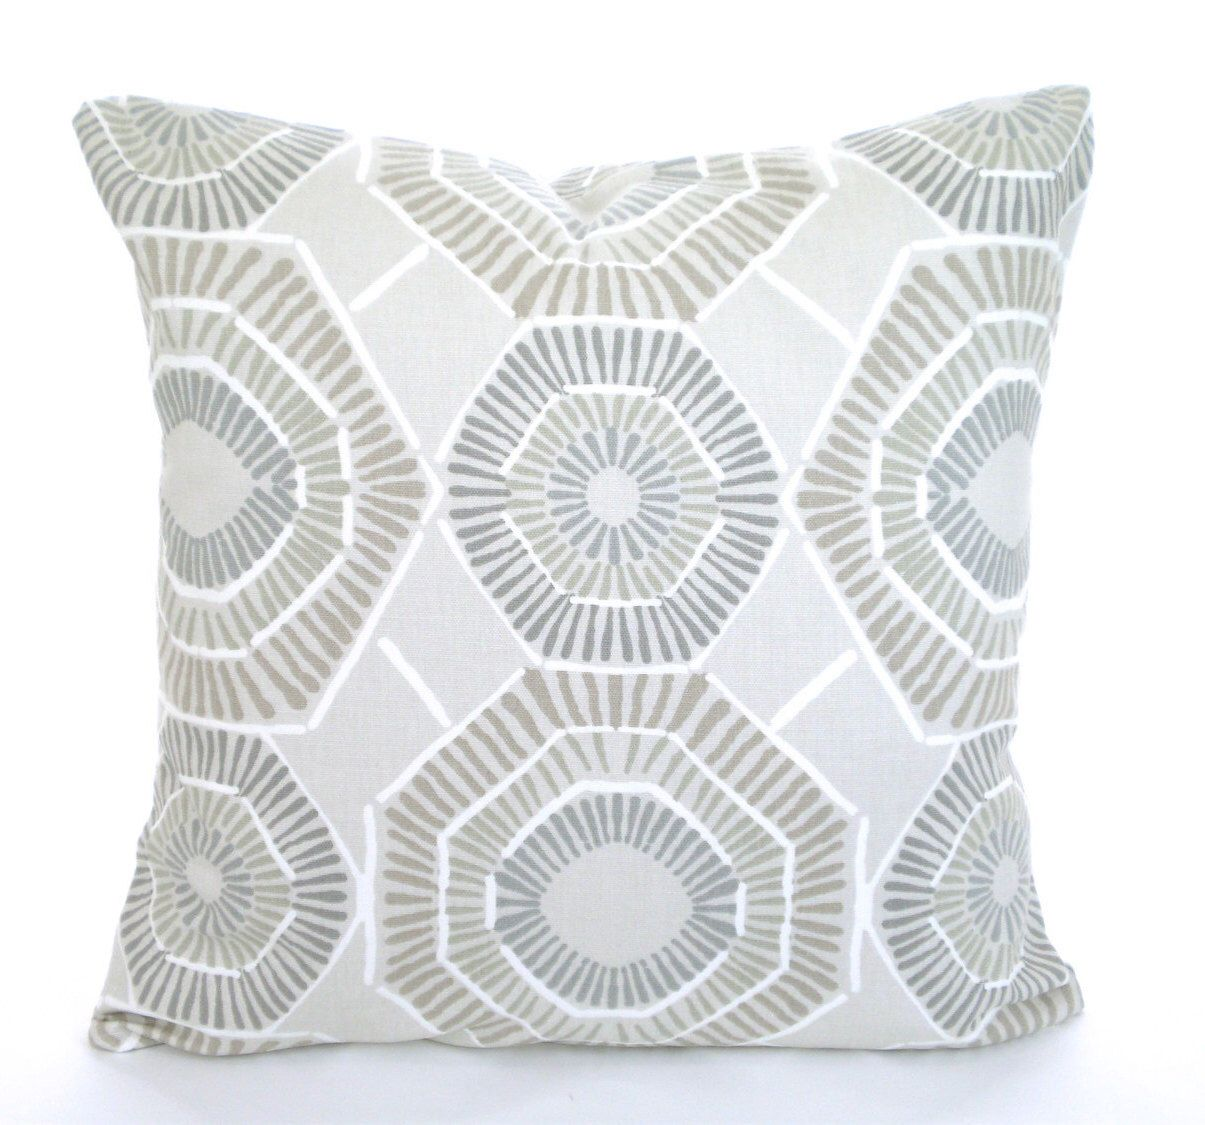 Throw Pillows Taupe : Taupe Tan Gray Pillow Covers, Decorative Throw Pillows, Tan Cushions, Ecru Tan Grey White Charm ...